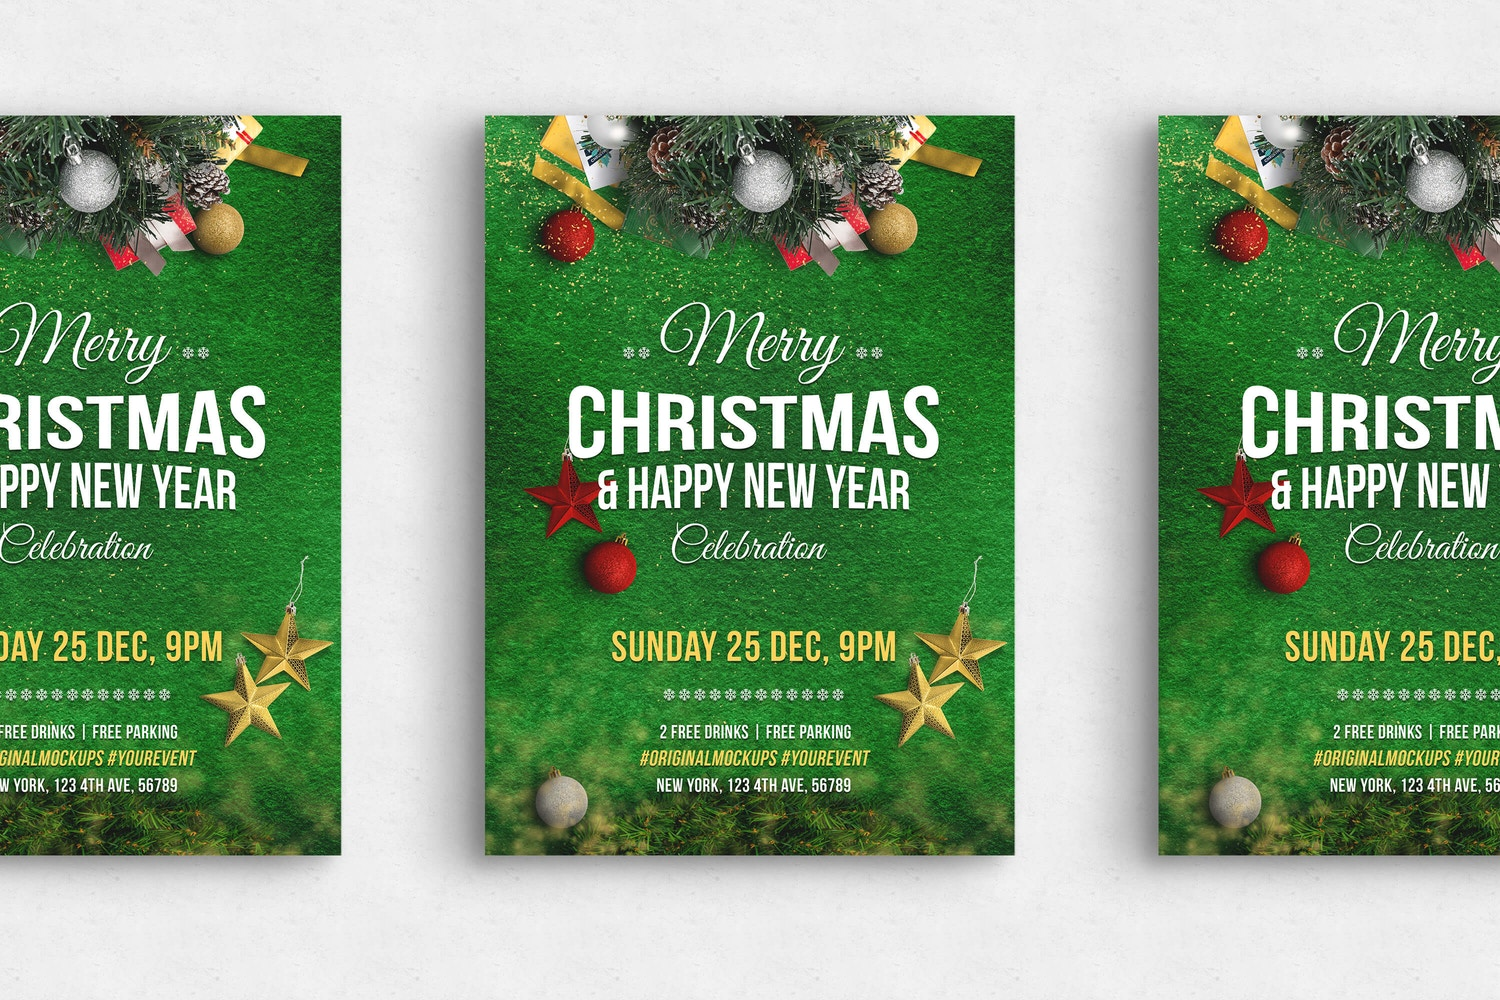 Merry Christmas Flyer - Poster 02